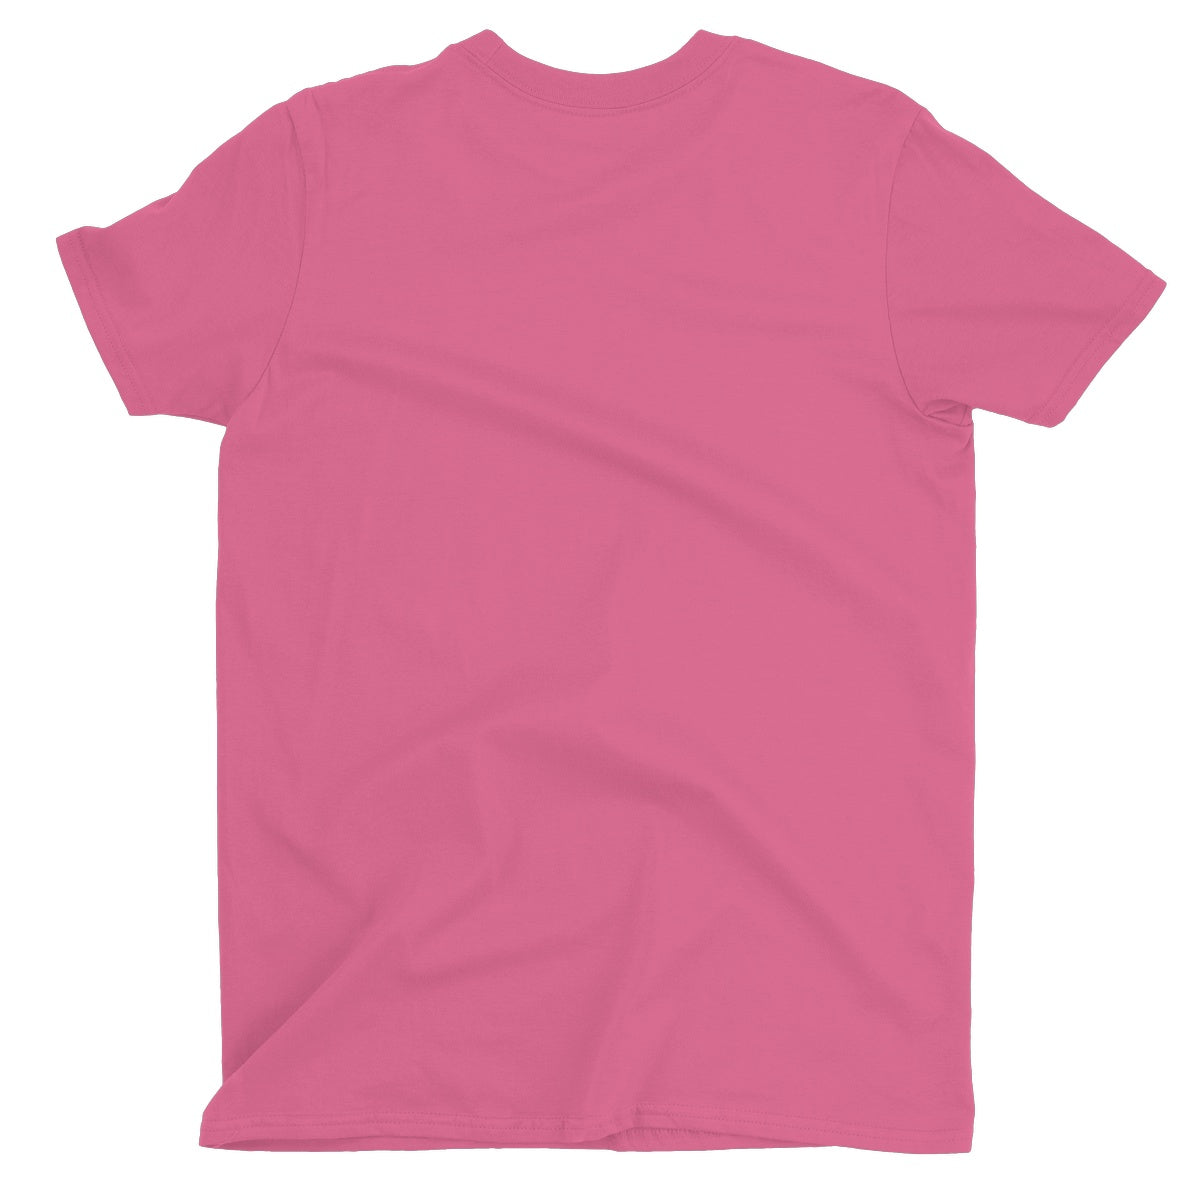 Event Day Unisex Neon T-Shirt